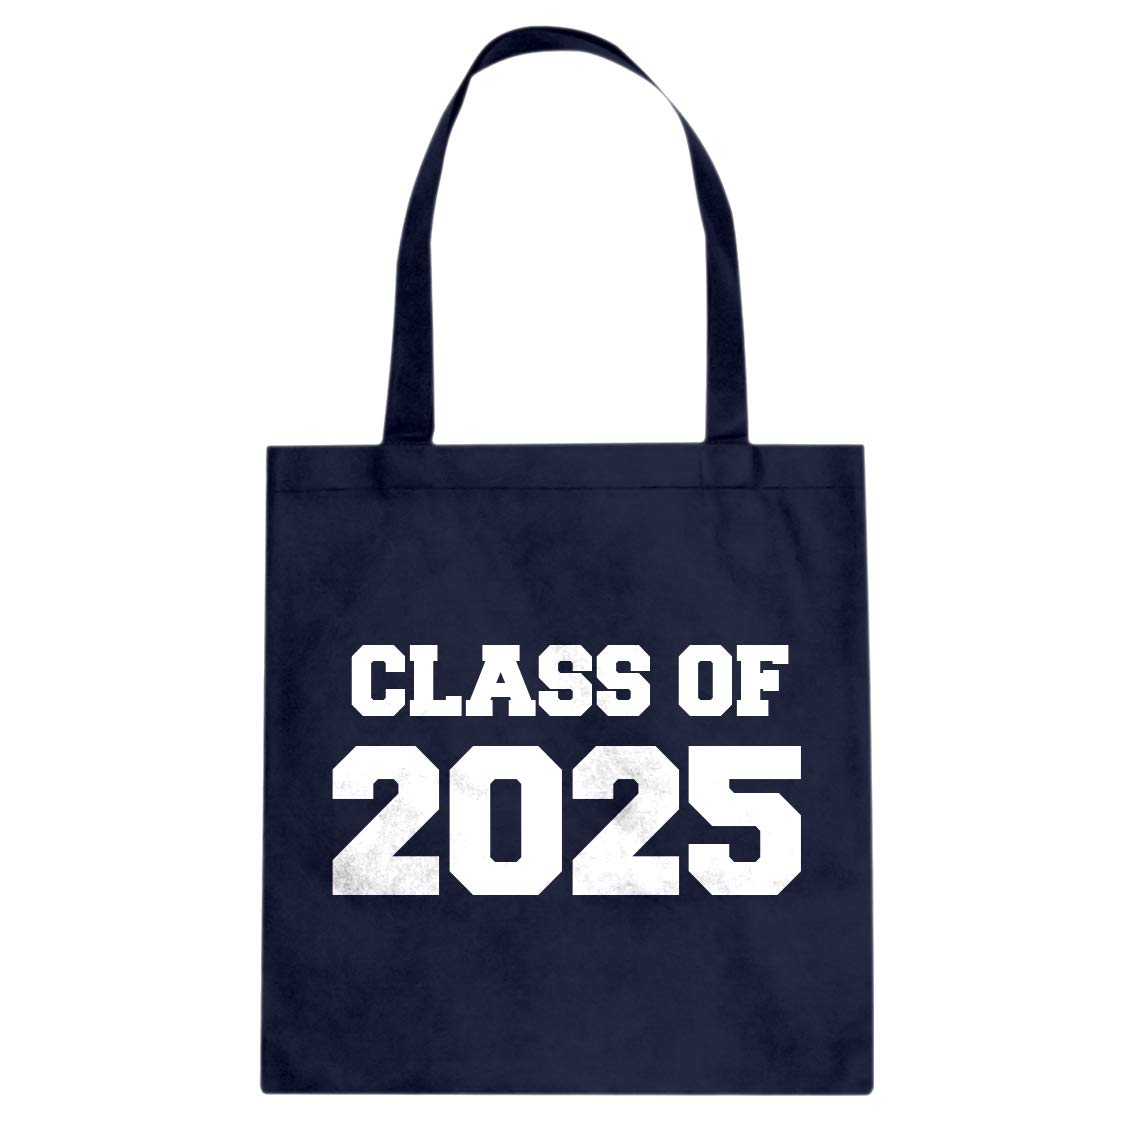 Indica Plateau Class of 2025 Cotton Canvas Tote Bag